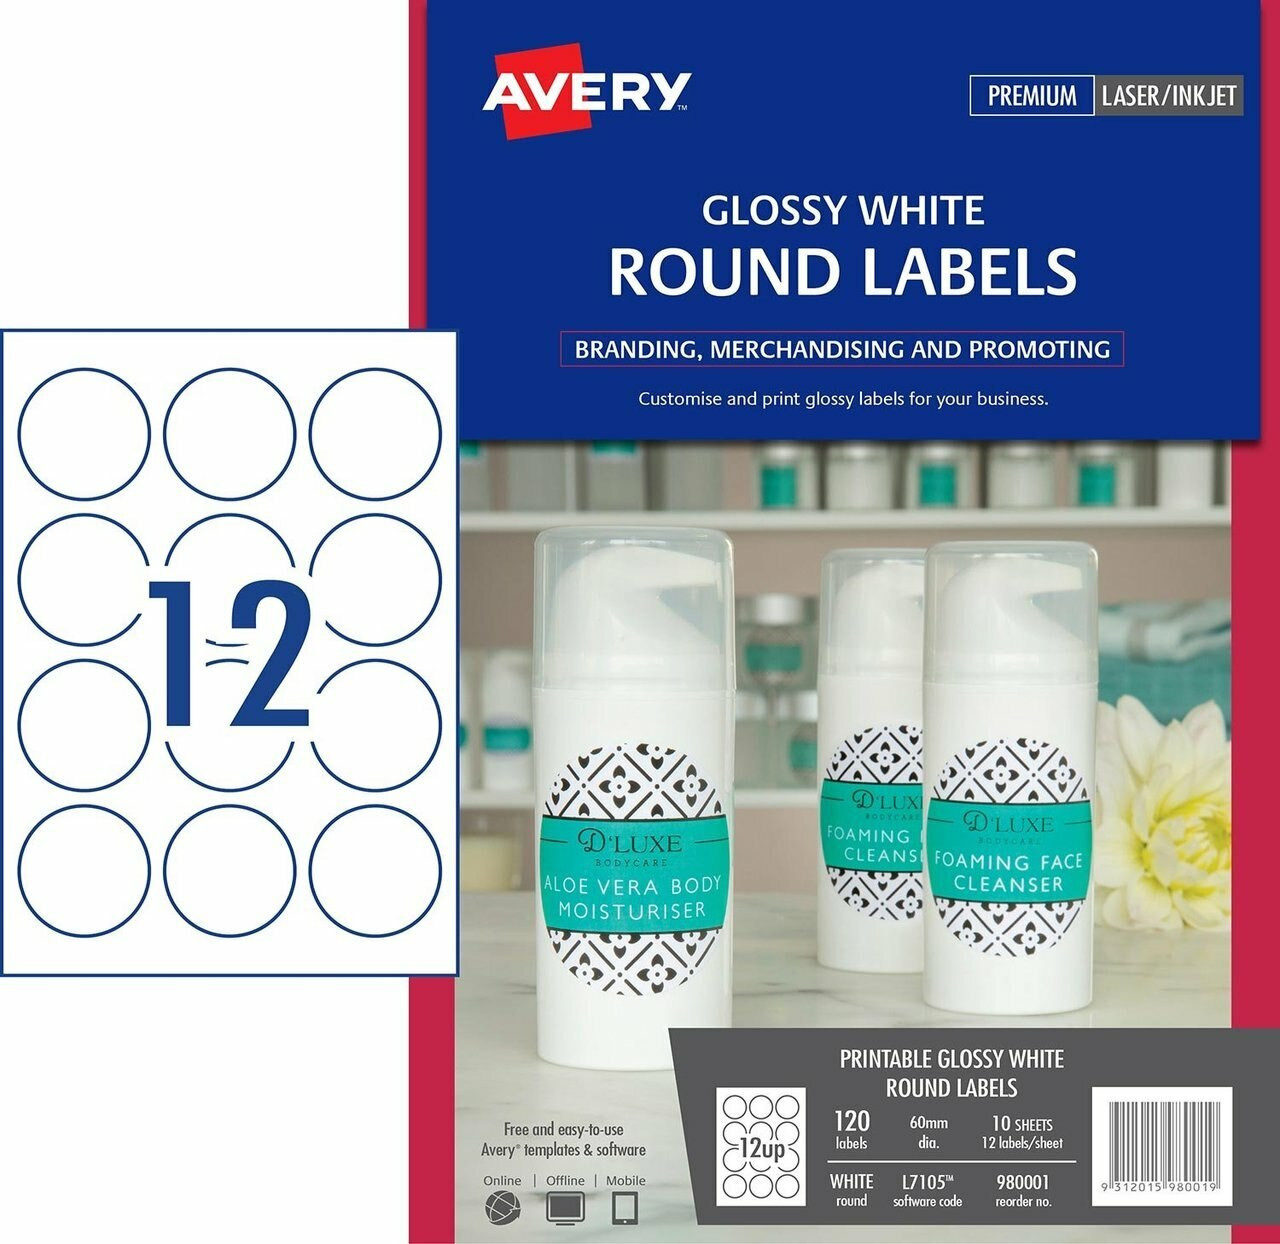 Avery 980001 Glossy White Round Labels - L7105 - 120/pack - 60 mm